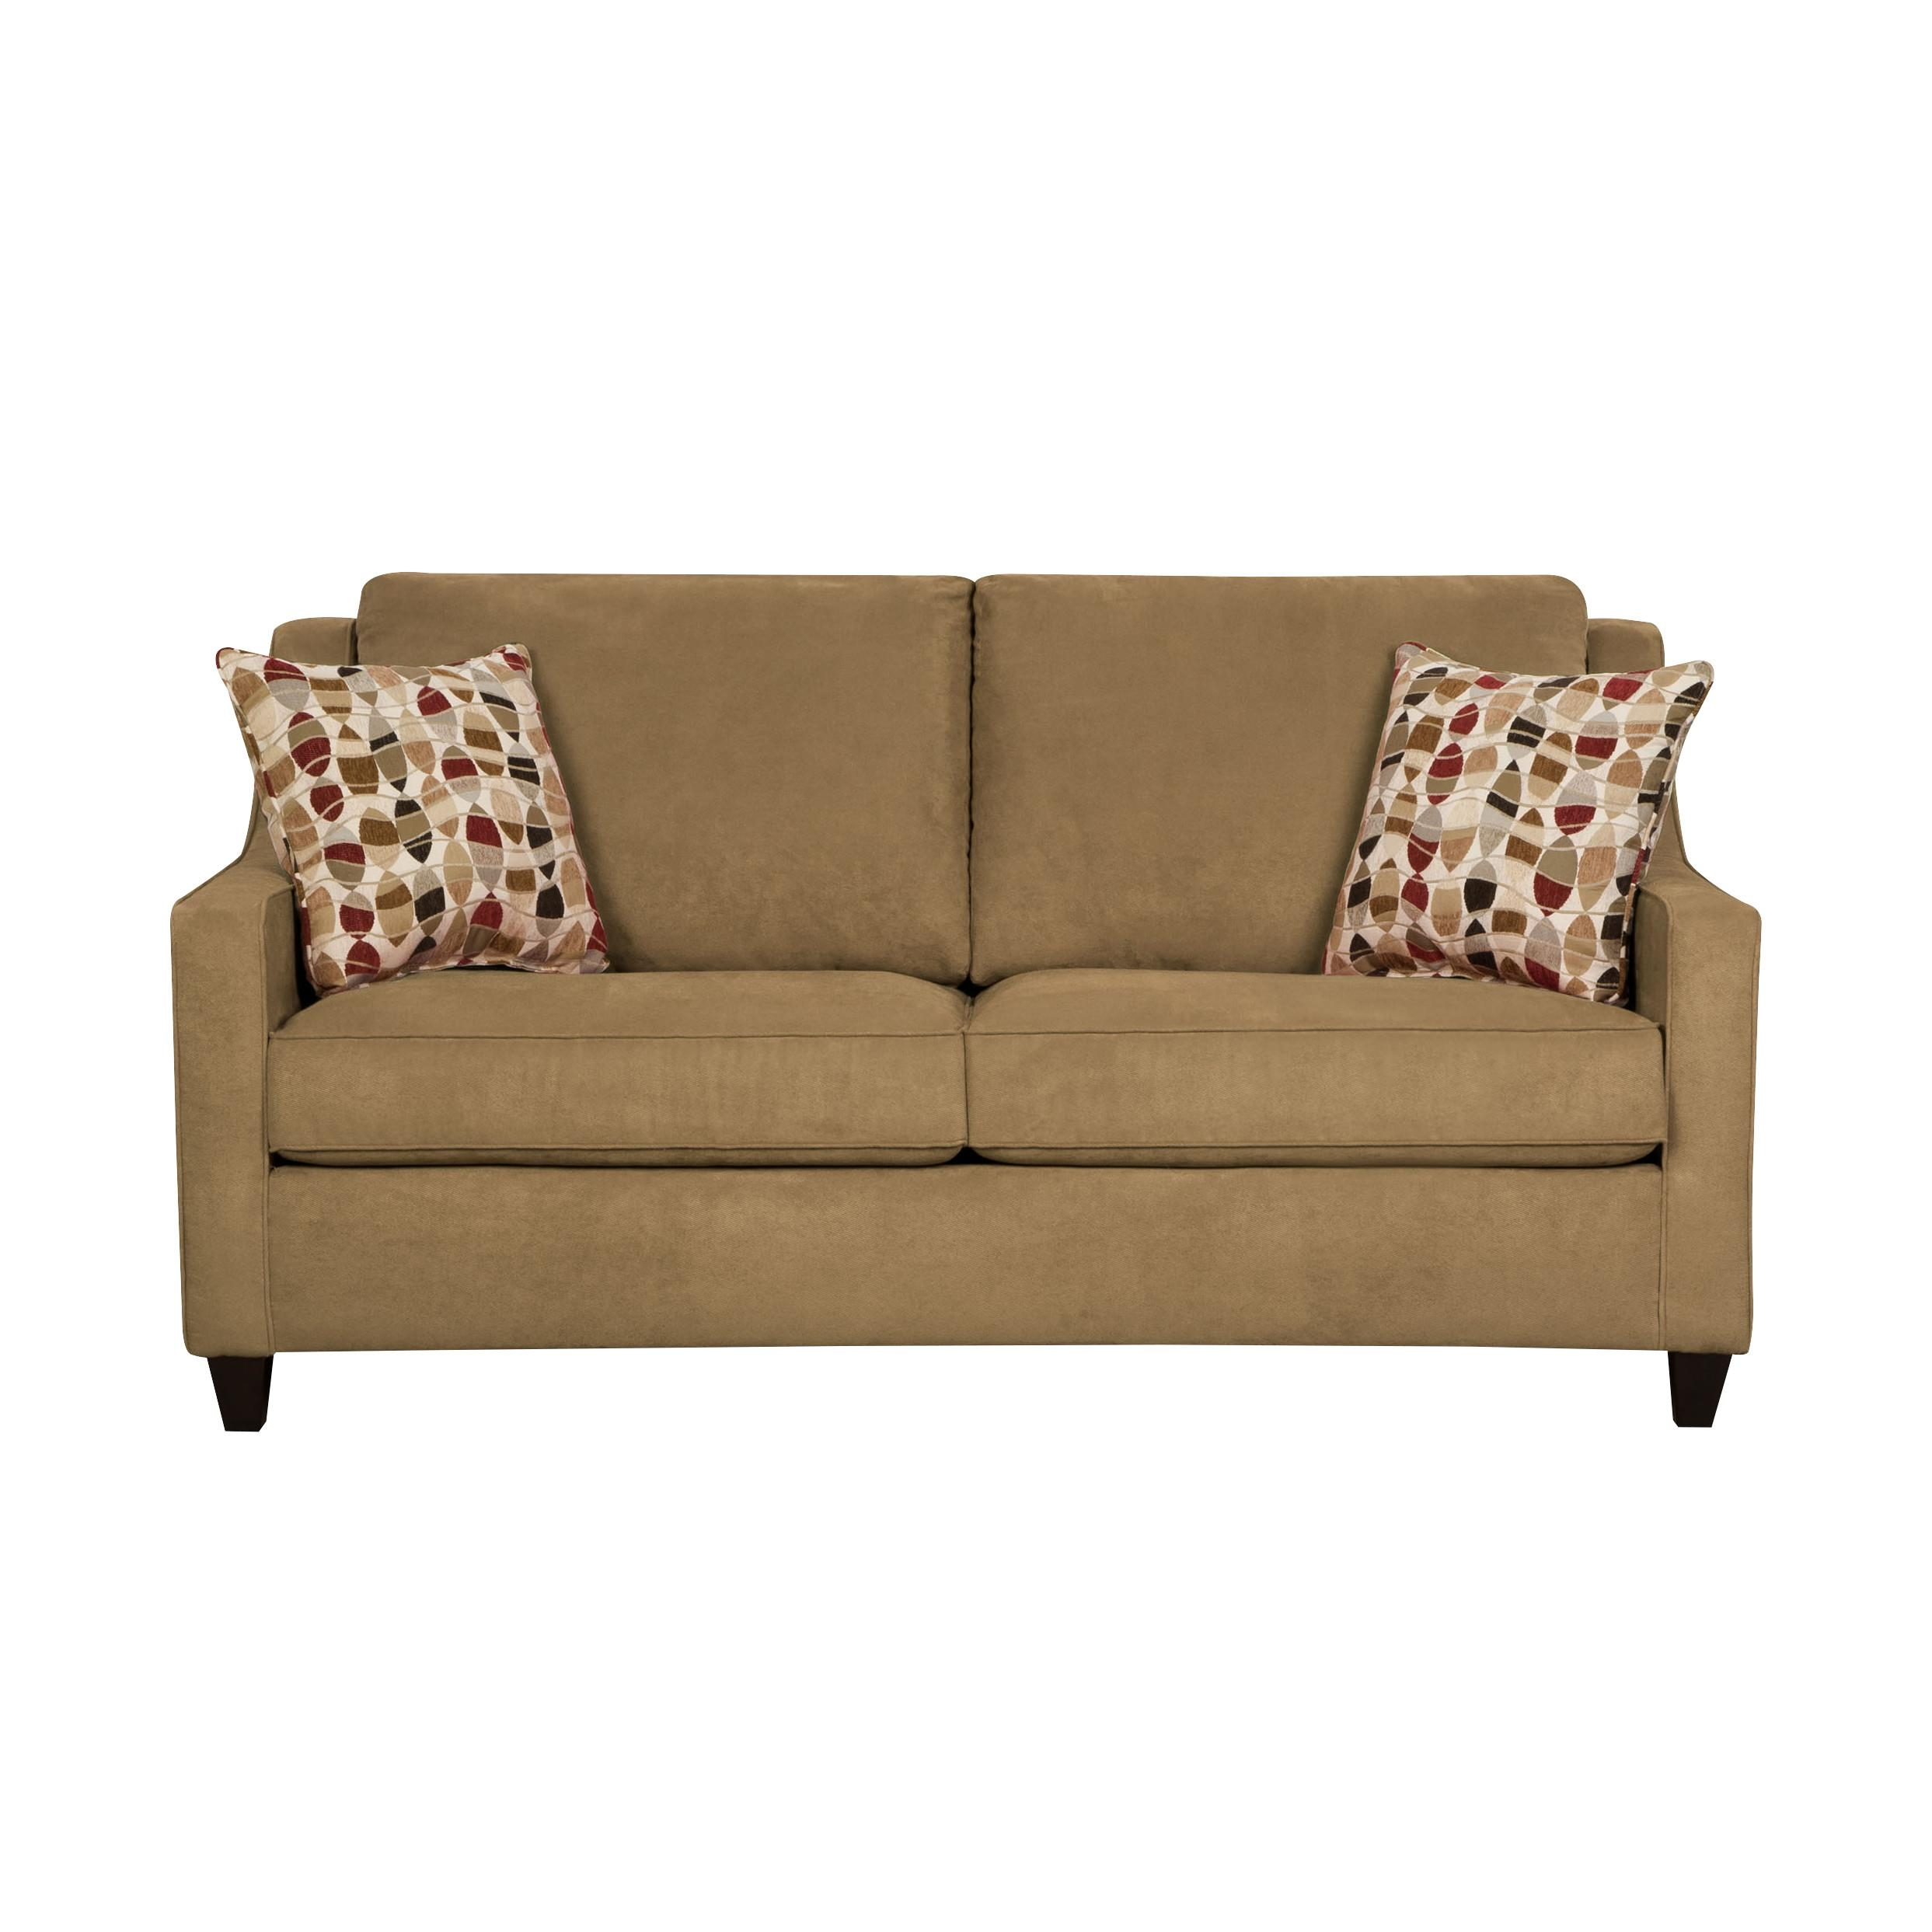 Simmons Sofa With Design Image 20569 | Kengire With Simmons Sofa Beds (Image 13 of 20)